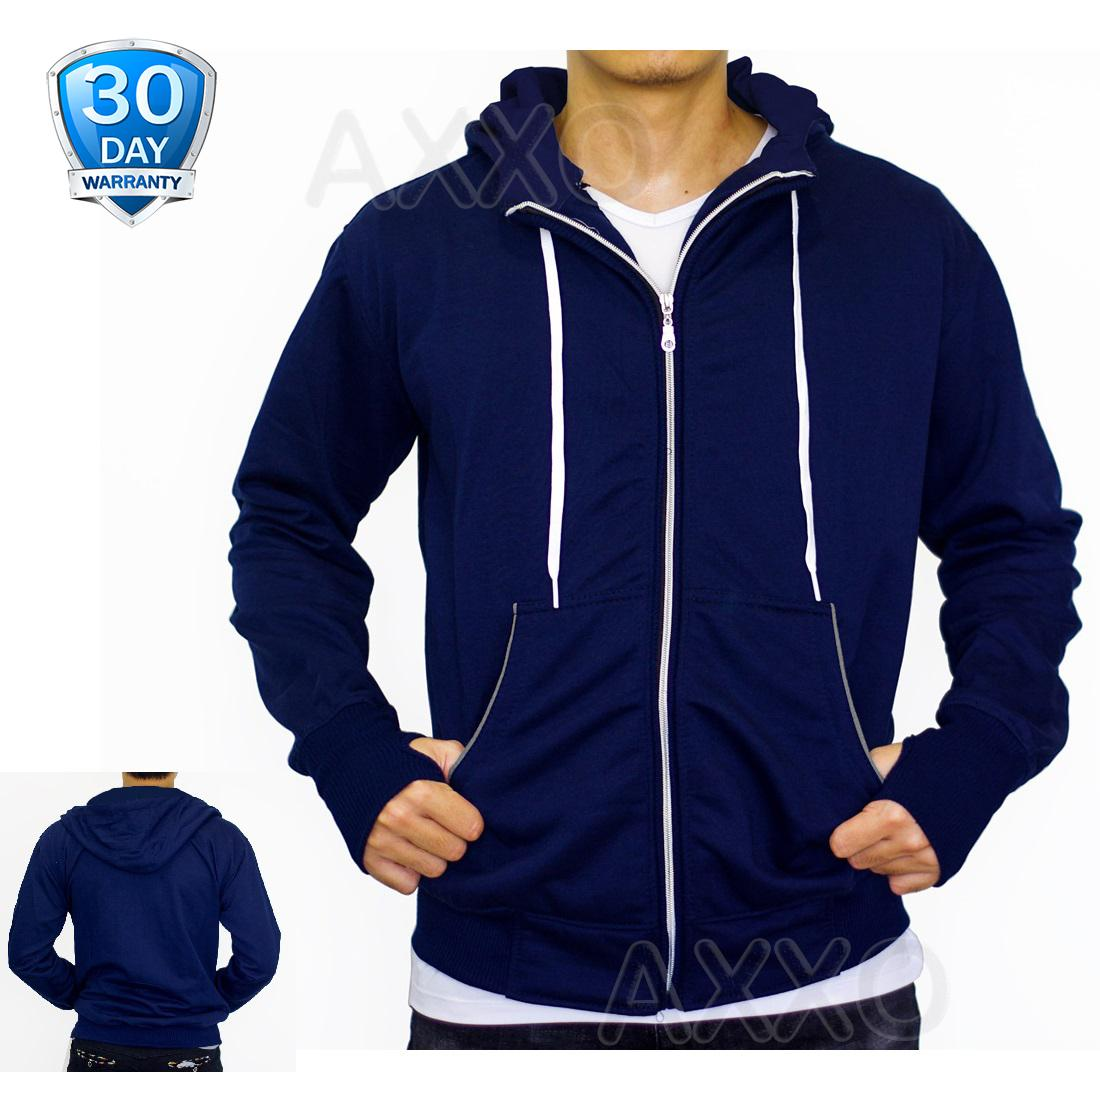 Jaket Sweater Hoodie Polos Switer Lubang Jempol Model Ariel Jaket Model  Korea Pria Mens Jacket Windproof 1d63e2e7b7